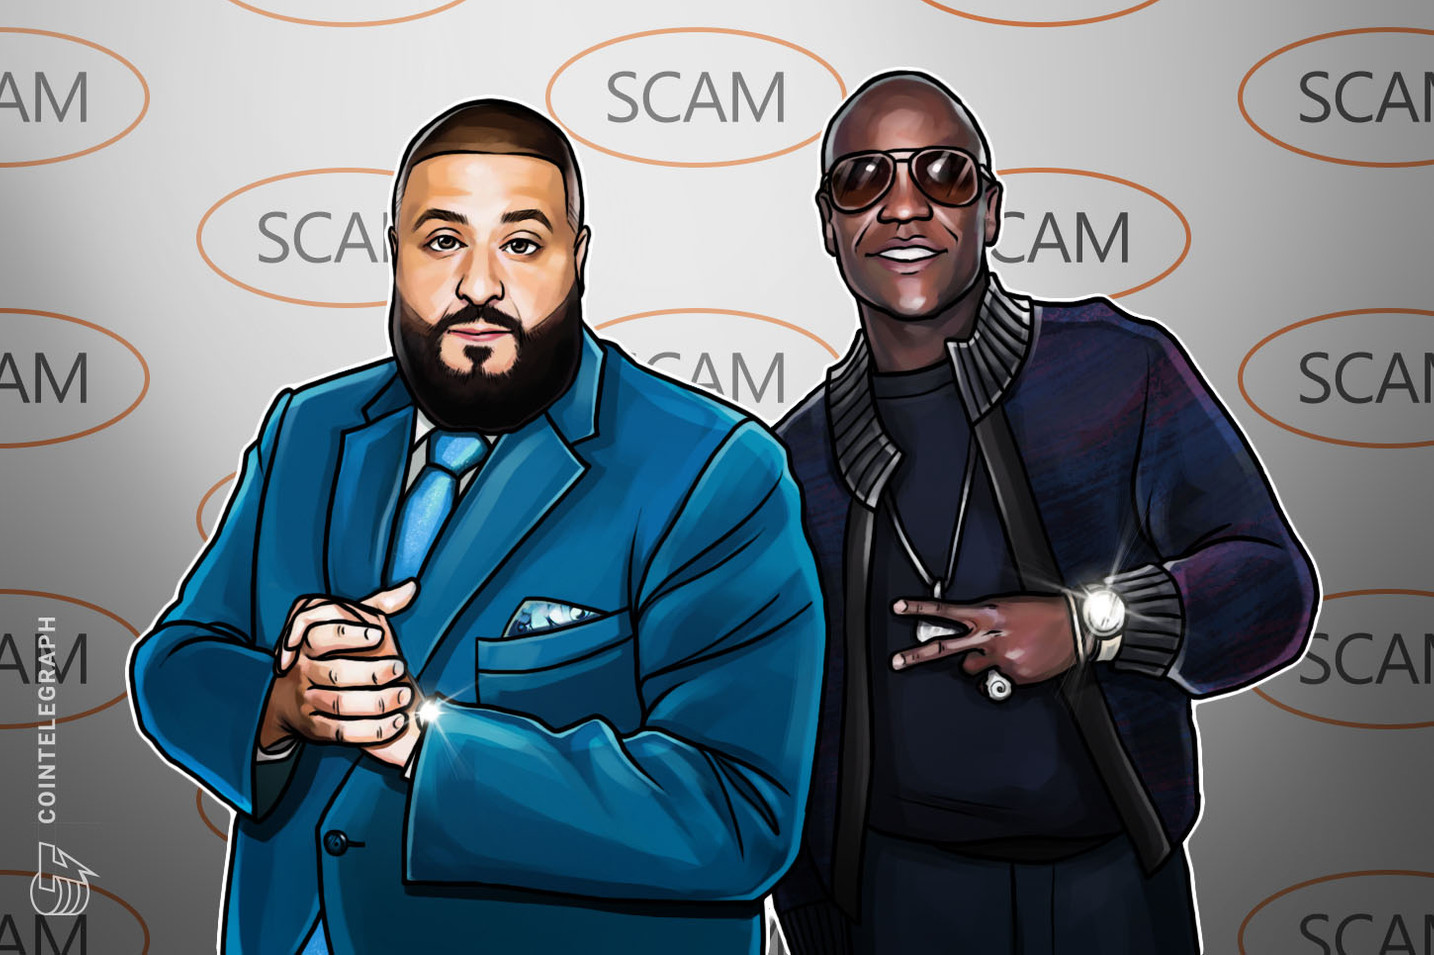 Celebs and ICOs: The Makings of a Dangerous Duo